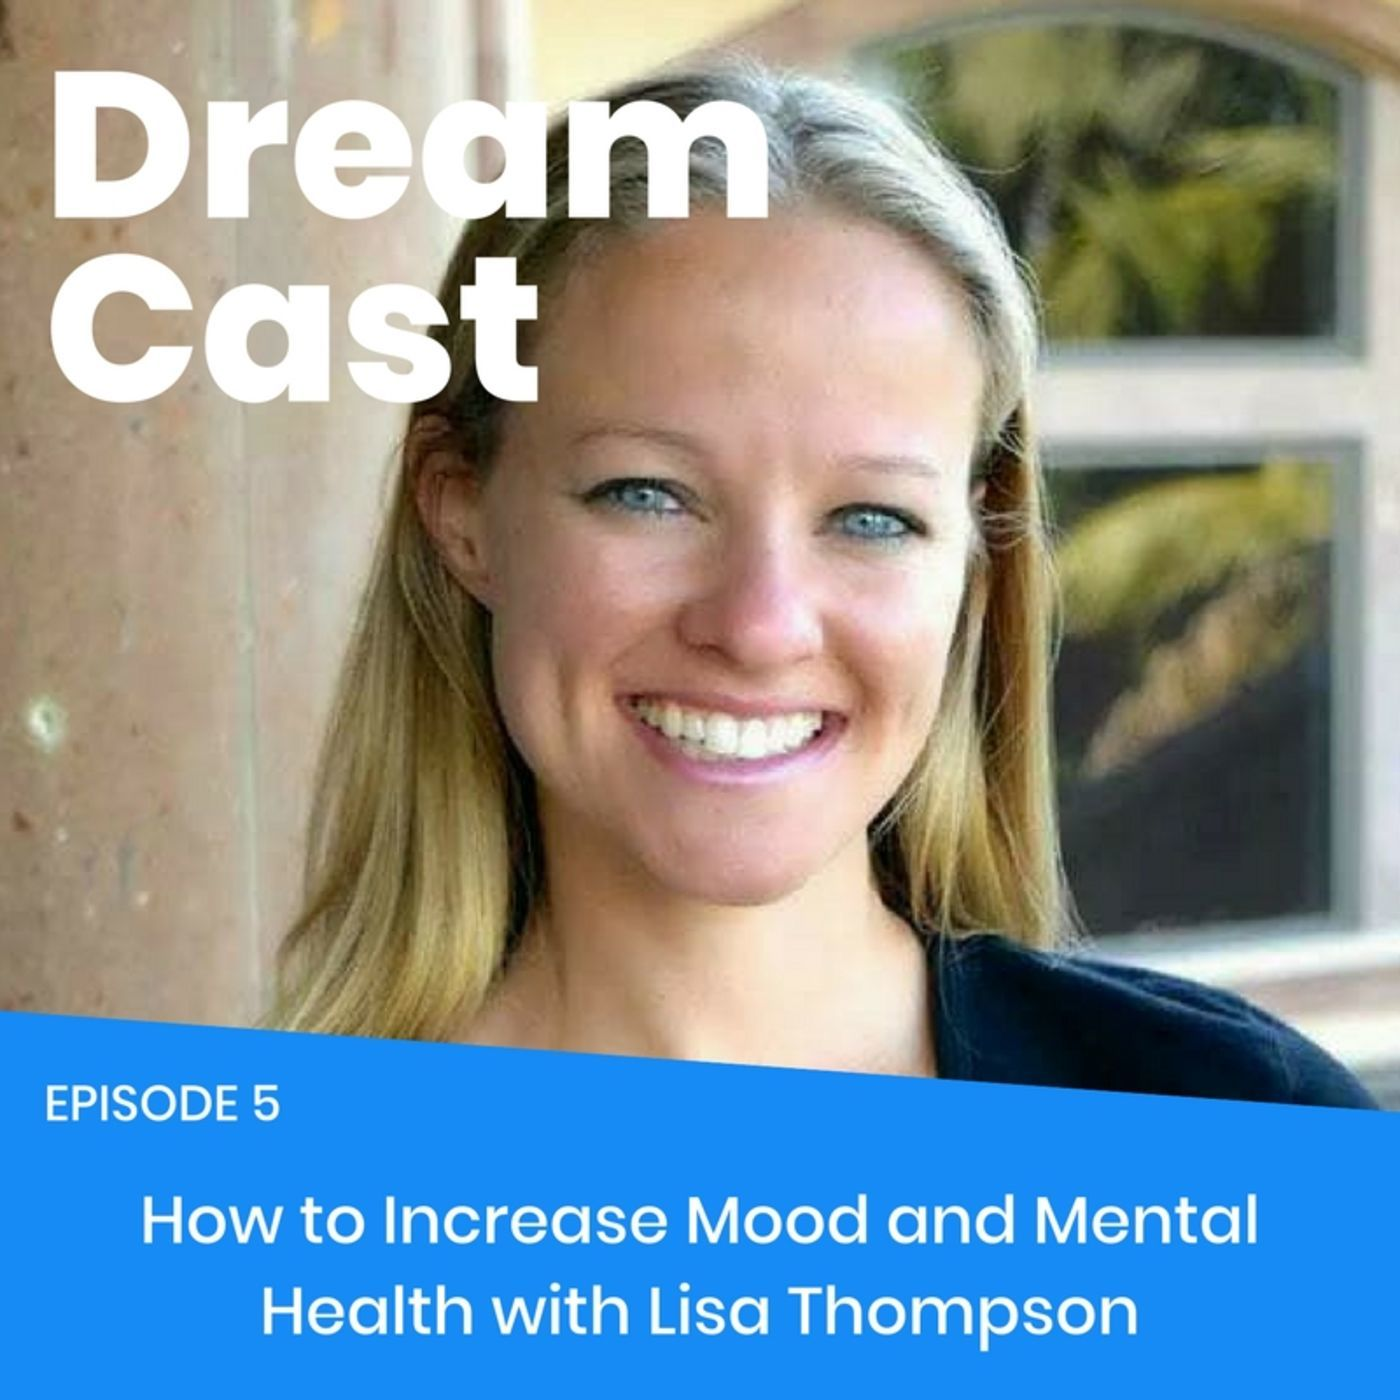 Episode 005 - How to Improve Mood and Mental Health with Lisa Thompson